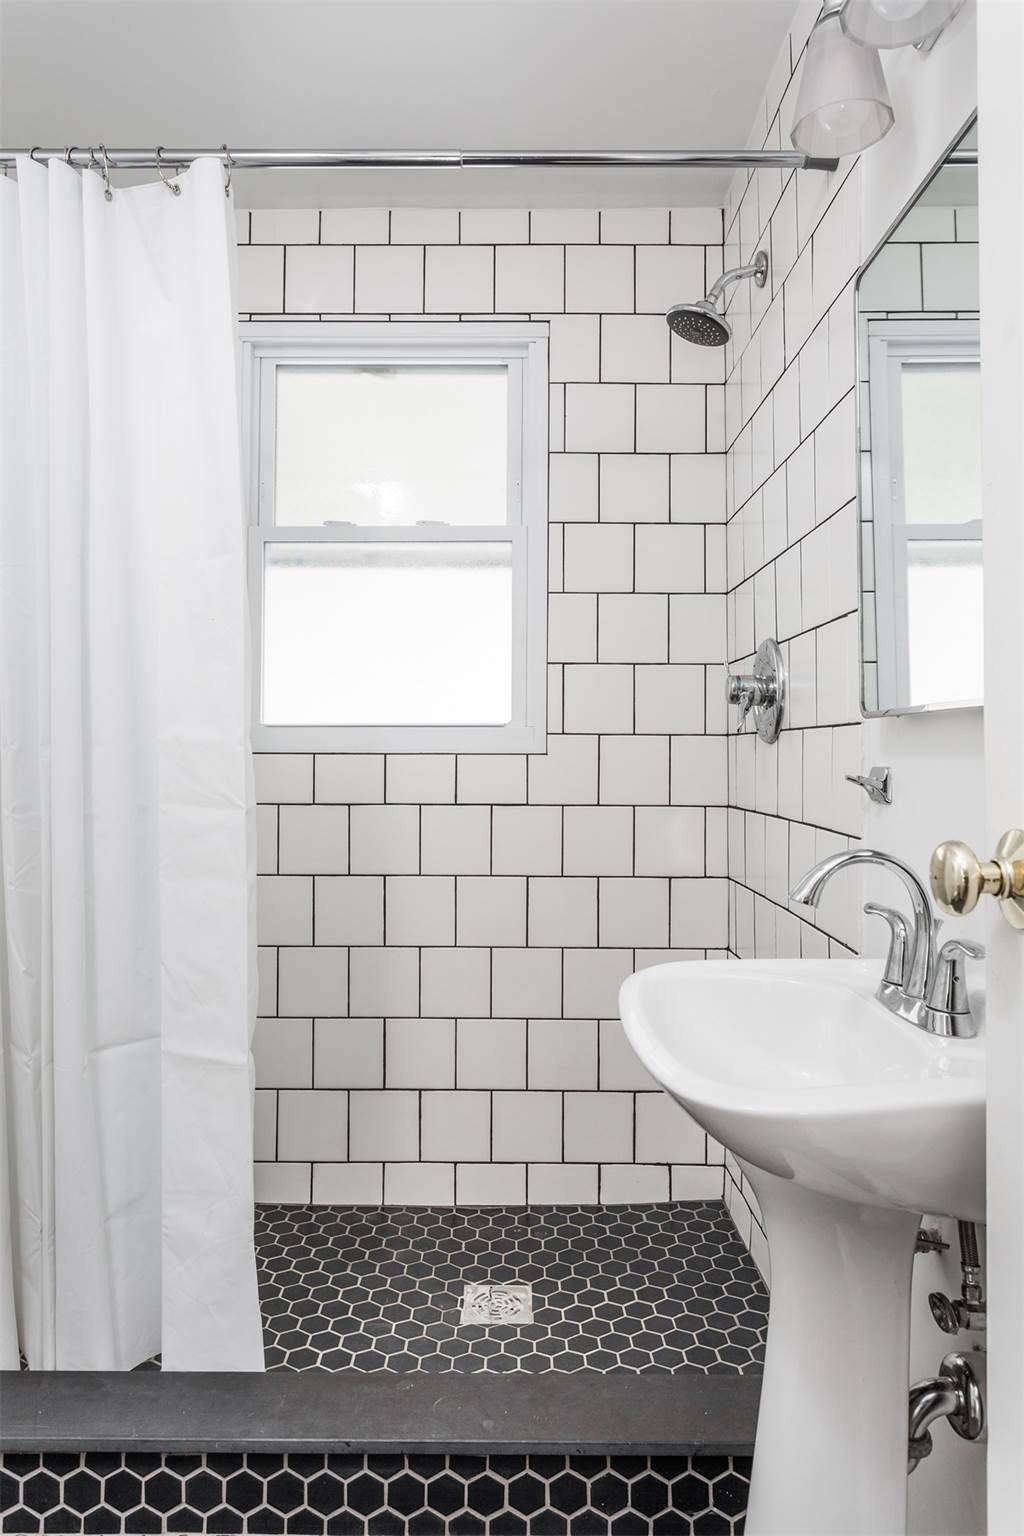 Turkey foot renoboys bathroom interior paint is sherman williams wall tile daltile matte in arctic white grout in charcoal floor tile somertile retro hex matte black grout in dorian dailygadgetfo Gallery